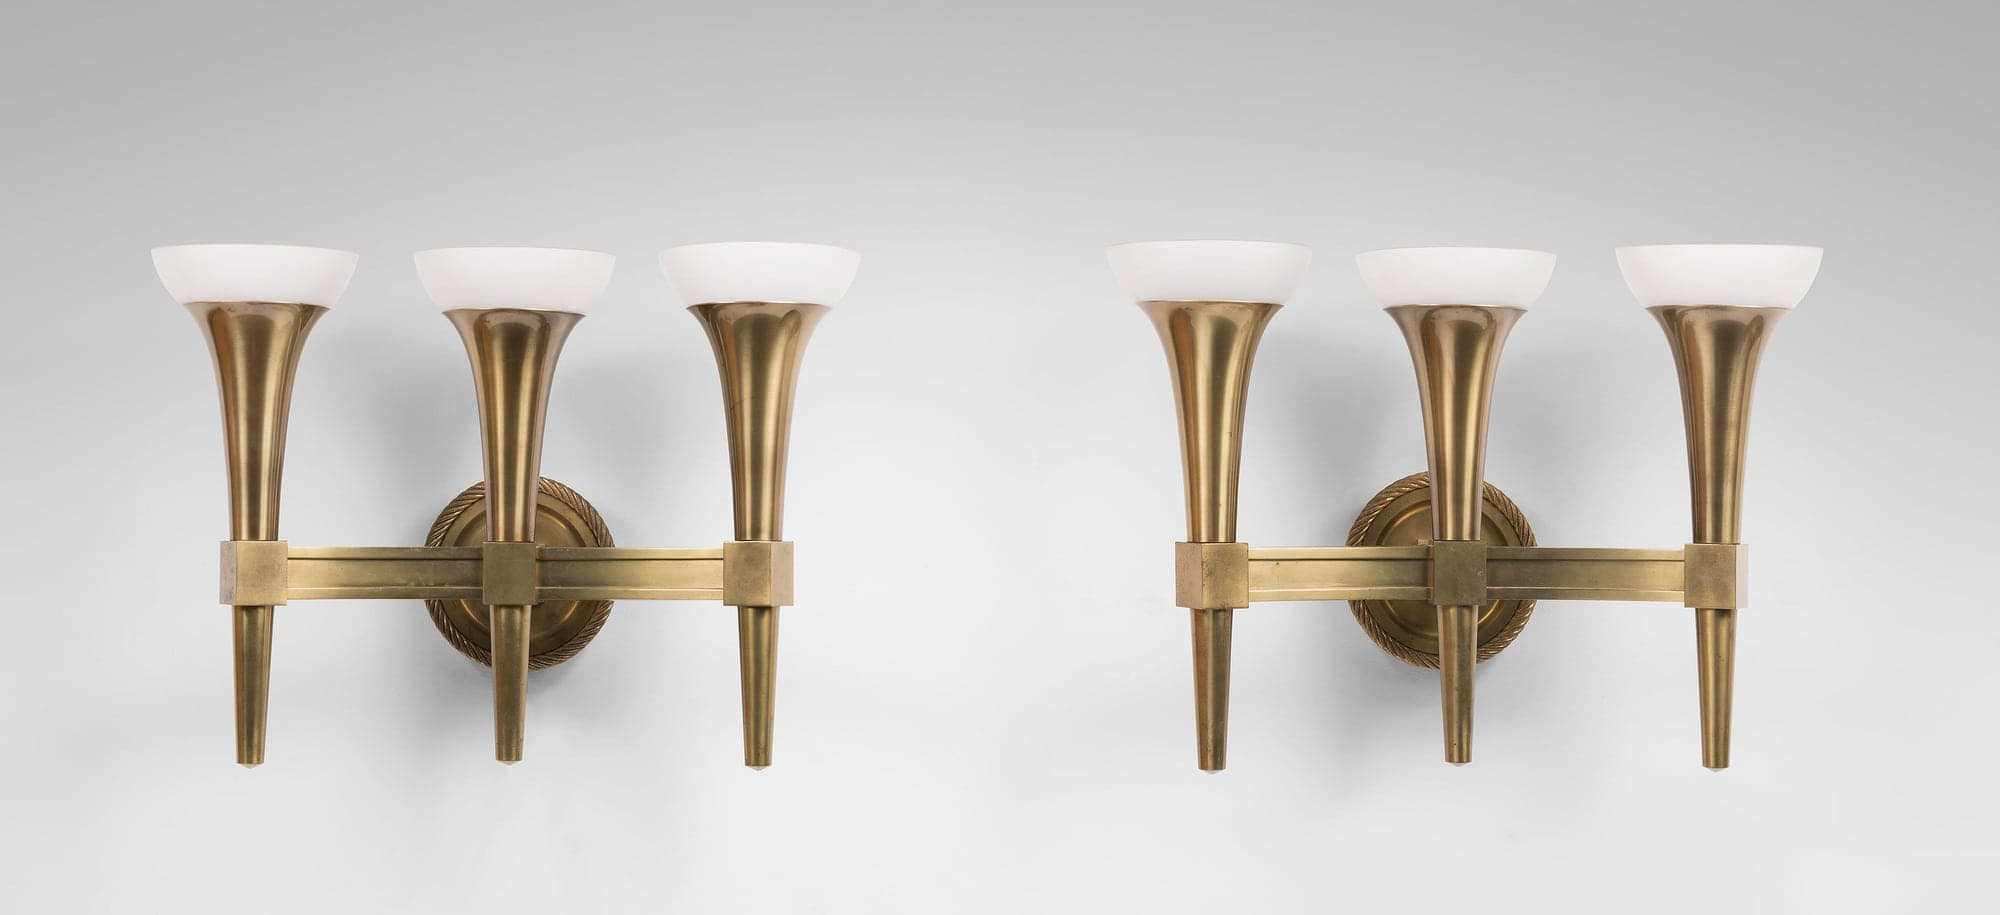 André Arbus, Pair of monumental wall-lamps with three arms, vue 01